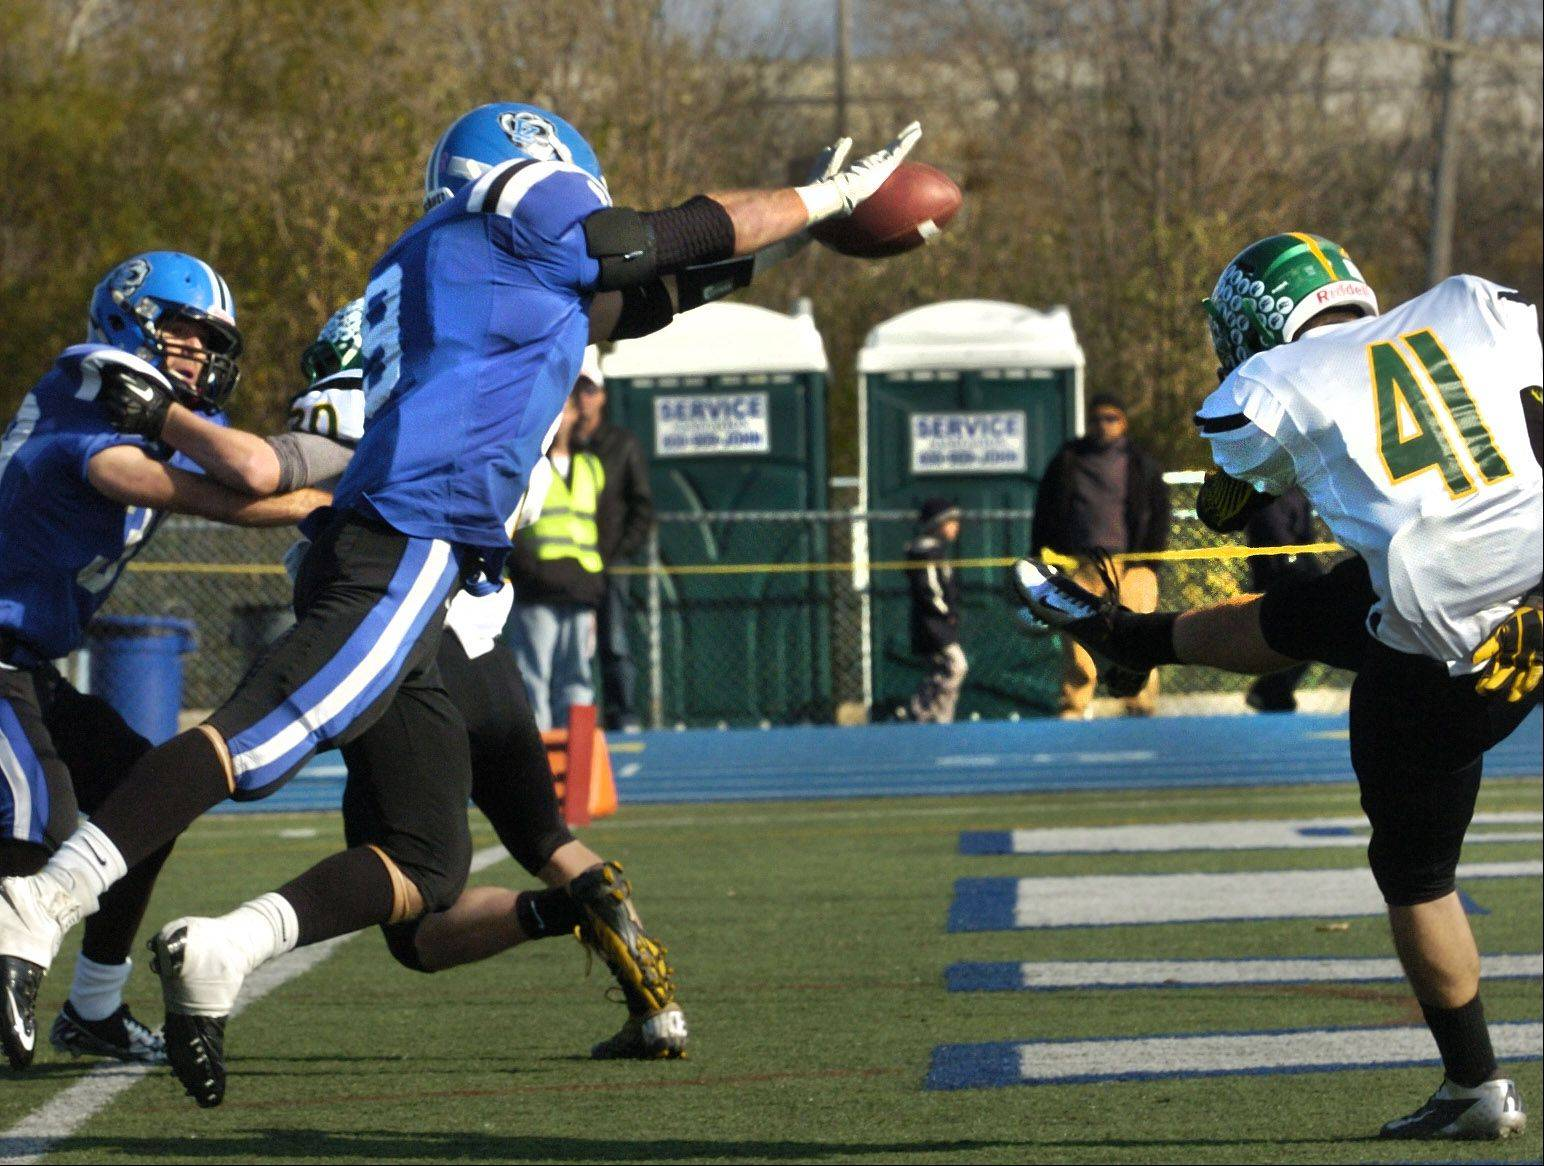 Colton Moskal of Lake Zurich blocks a Crystal Lake South punt for a safety in the first half of the Bears' Class 7A playoff victory Saturday.